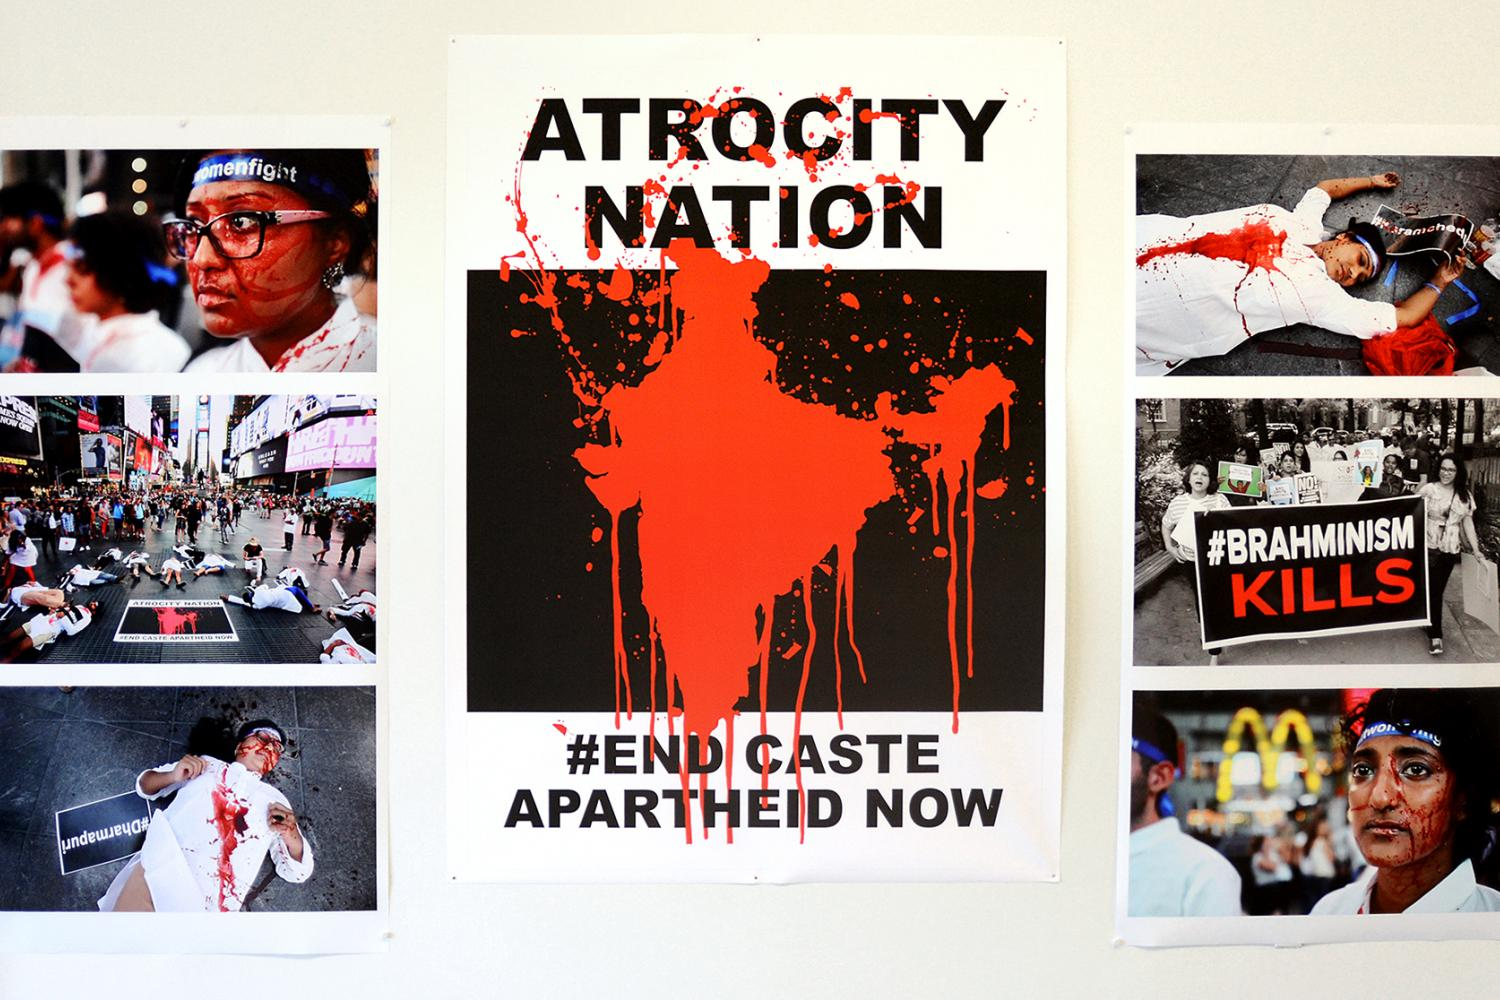 "A set of 3 posters on a white wall. The center poster depicts a red bloodstain in the shape of India over a black background. Along the top, the text says ""ATROCITY NATION"" and along the bottom the text says ""#END CASTE APARTHEID NOW"". On the left and right are posters depicting people at a protest wearing white and covered in fake blood. - Equality Labs - Atrocity Nation - Protest art demonstration"